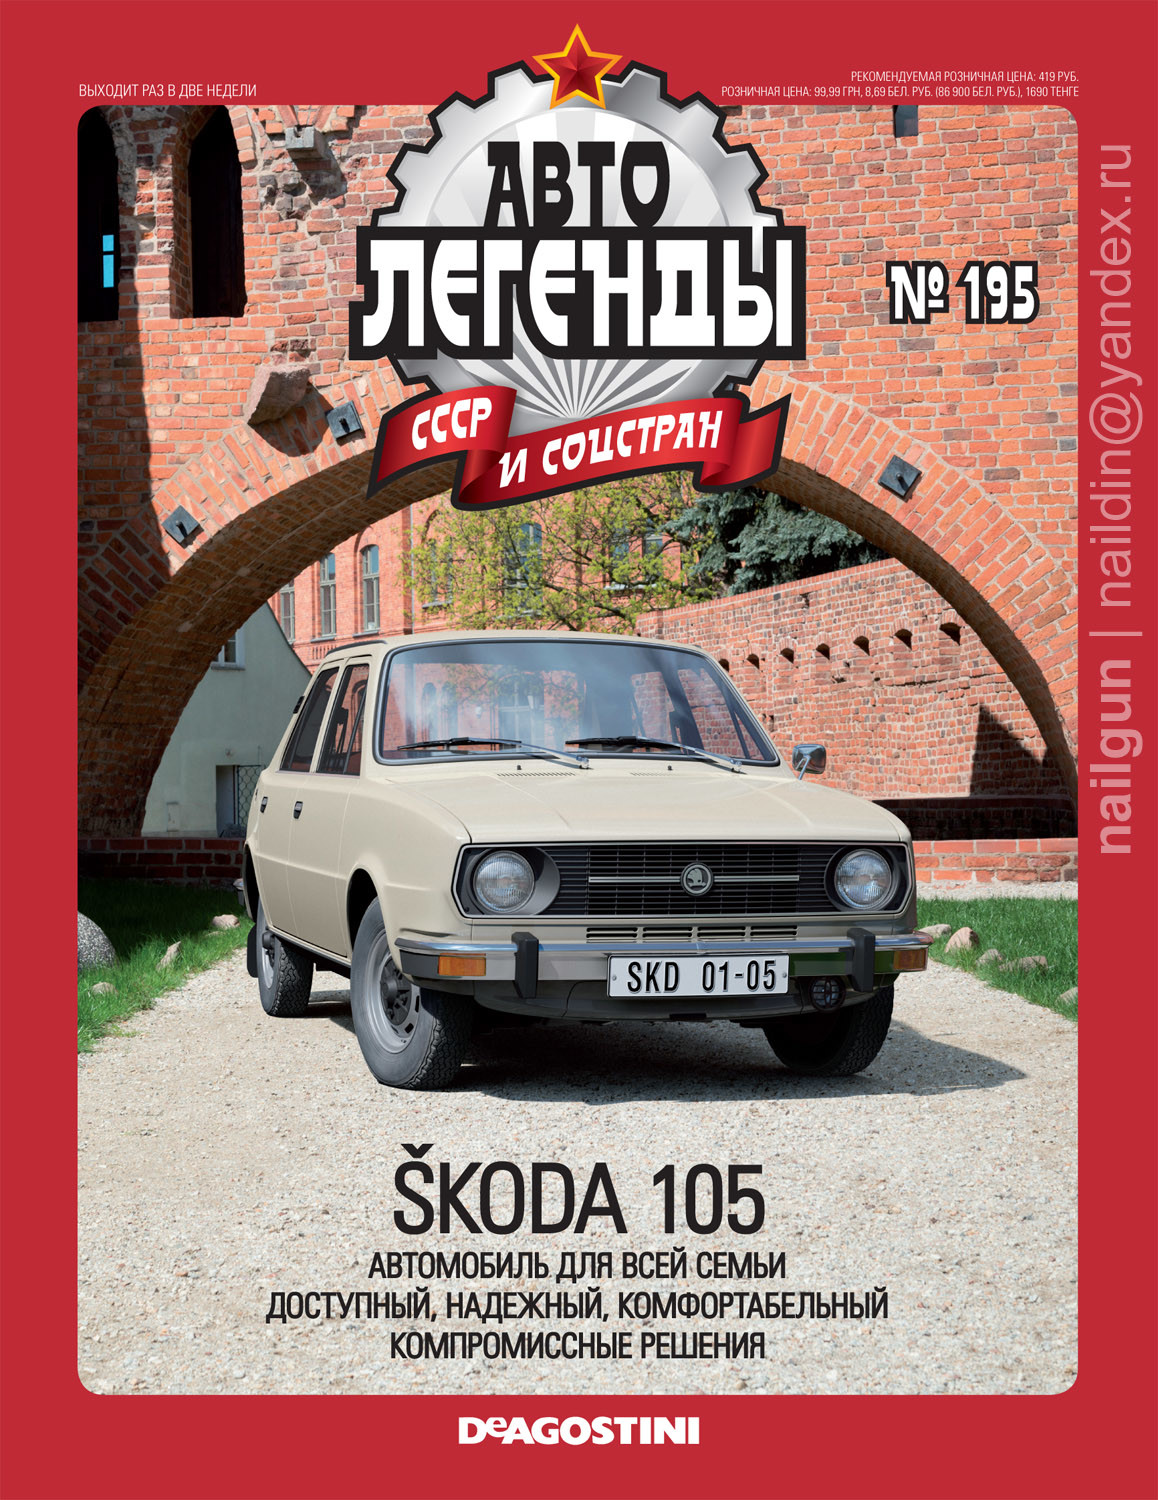 Nail khusnutdinov cars issue 195 hr 1